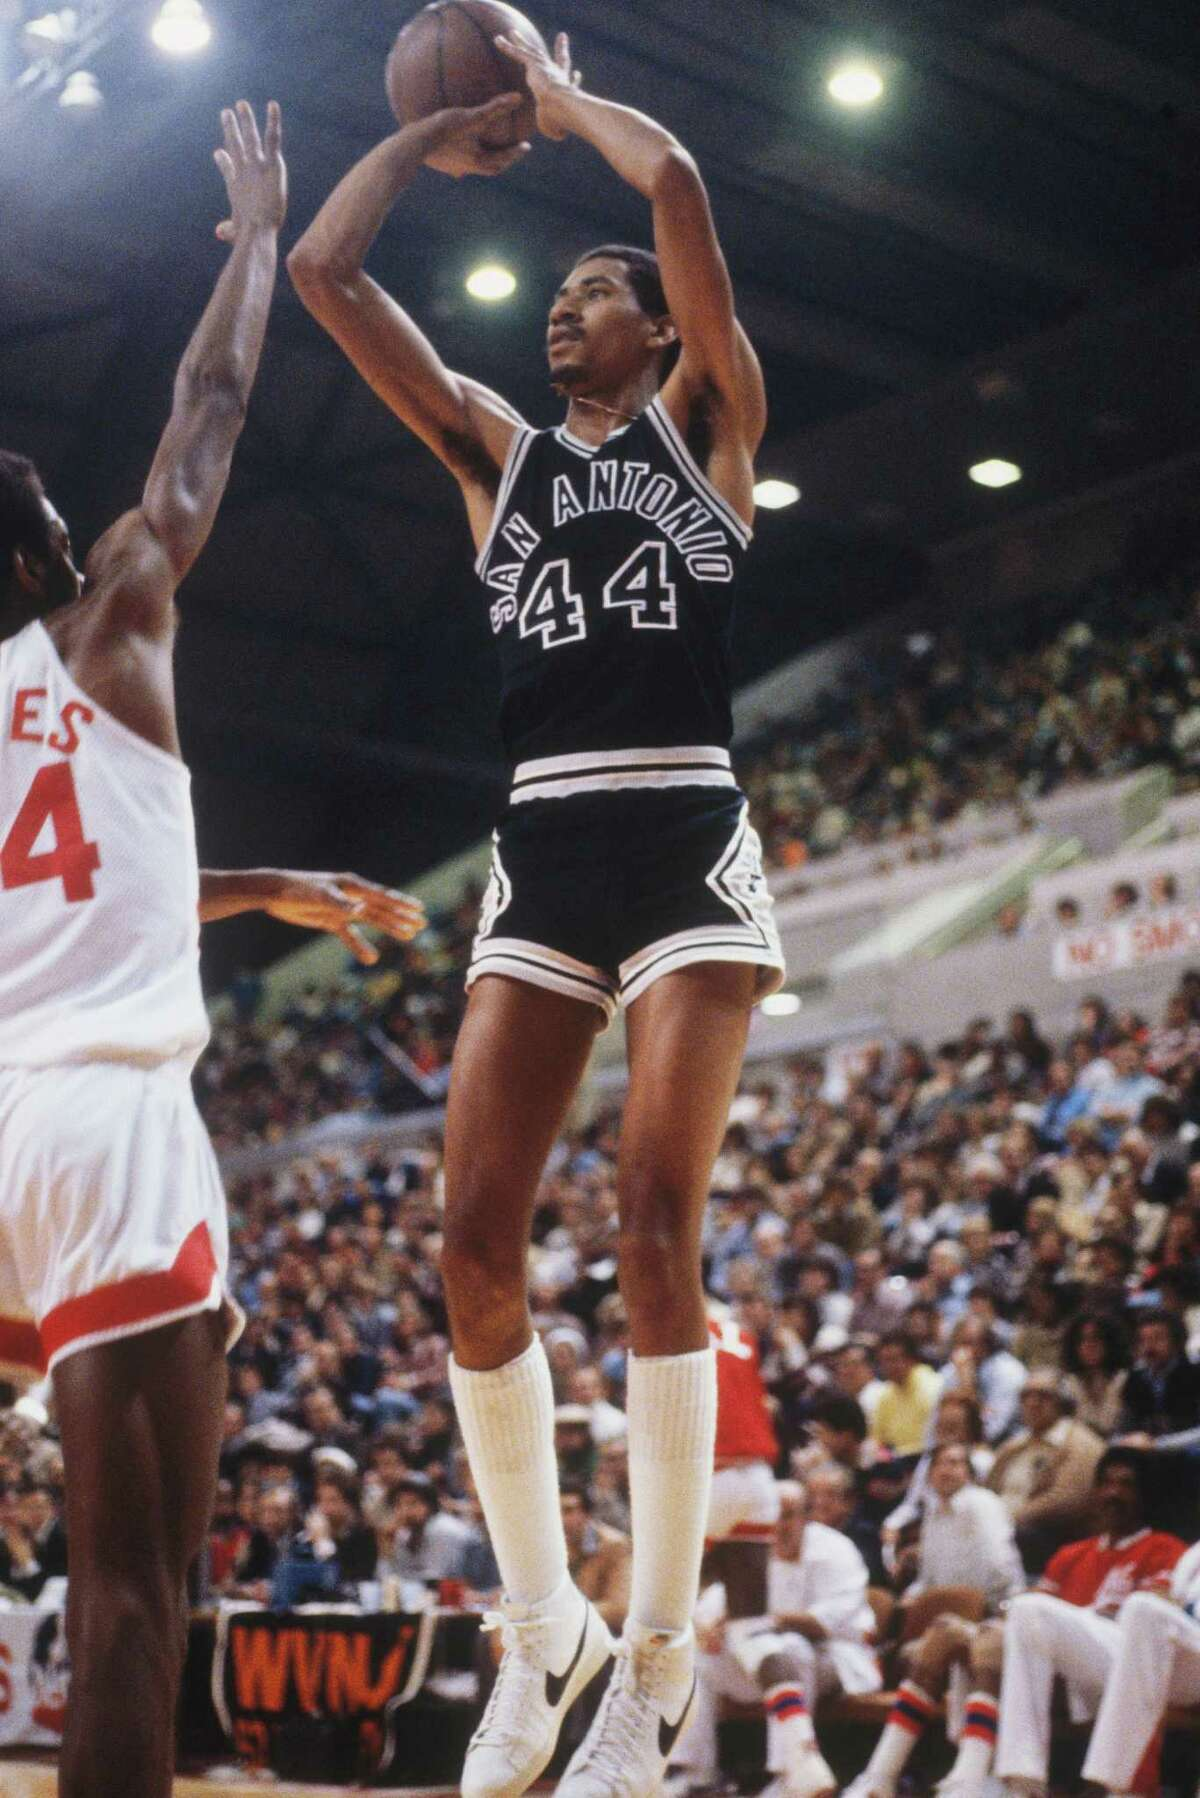 Spurs' George Gervin makes a jump shot circa 1970s during a game against the Nets.